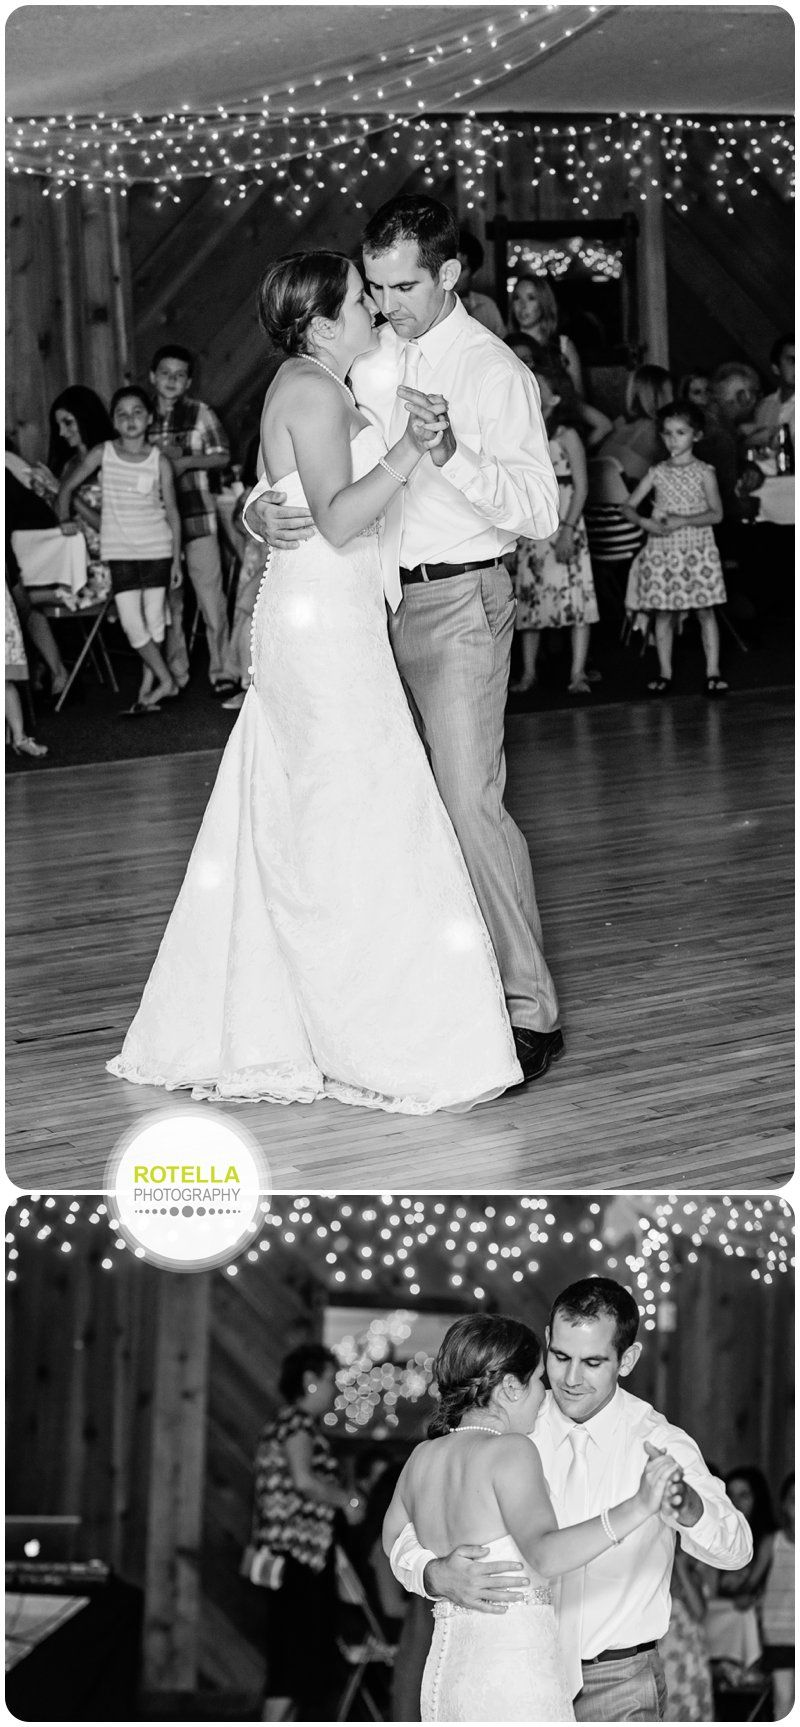 Minnesota Wedding Photography - Jack and Chelsey - First dance